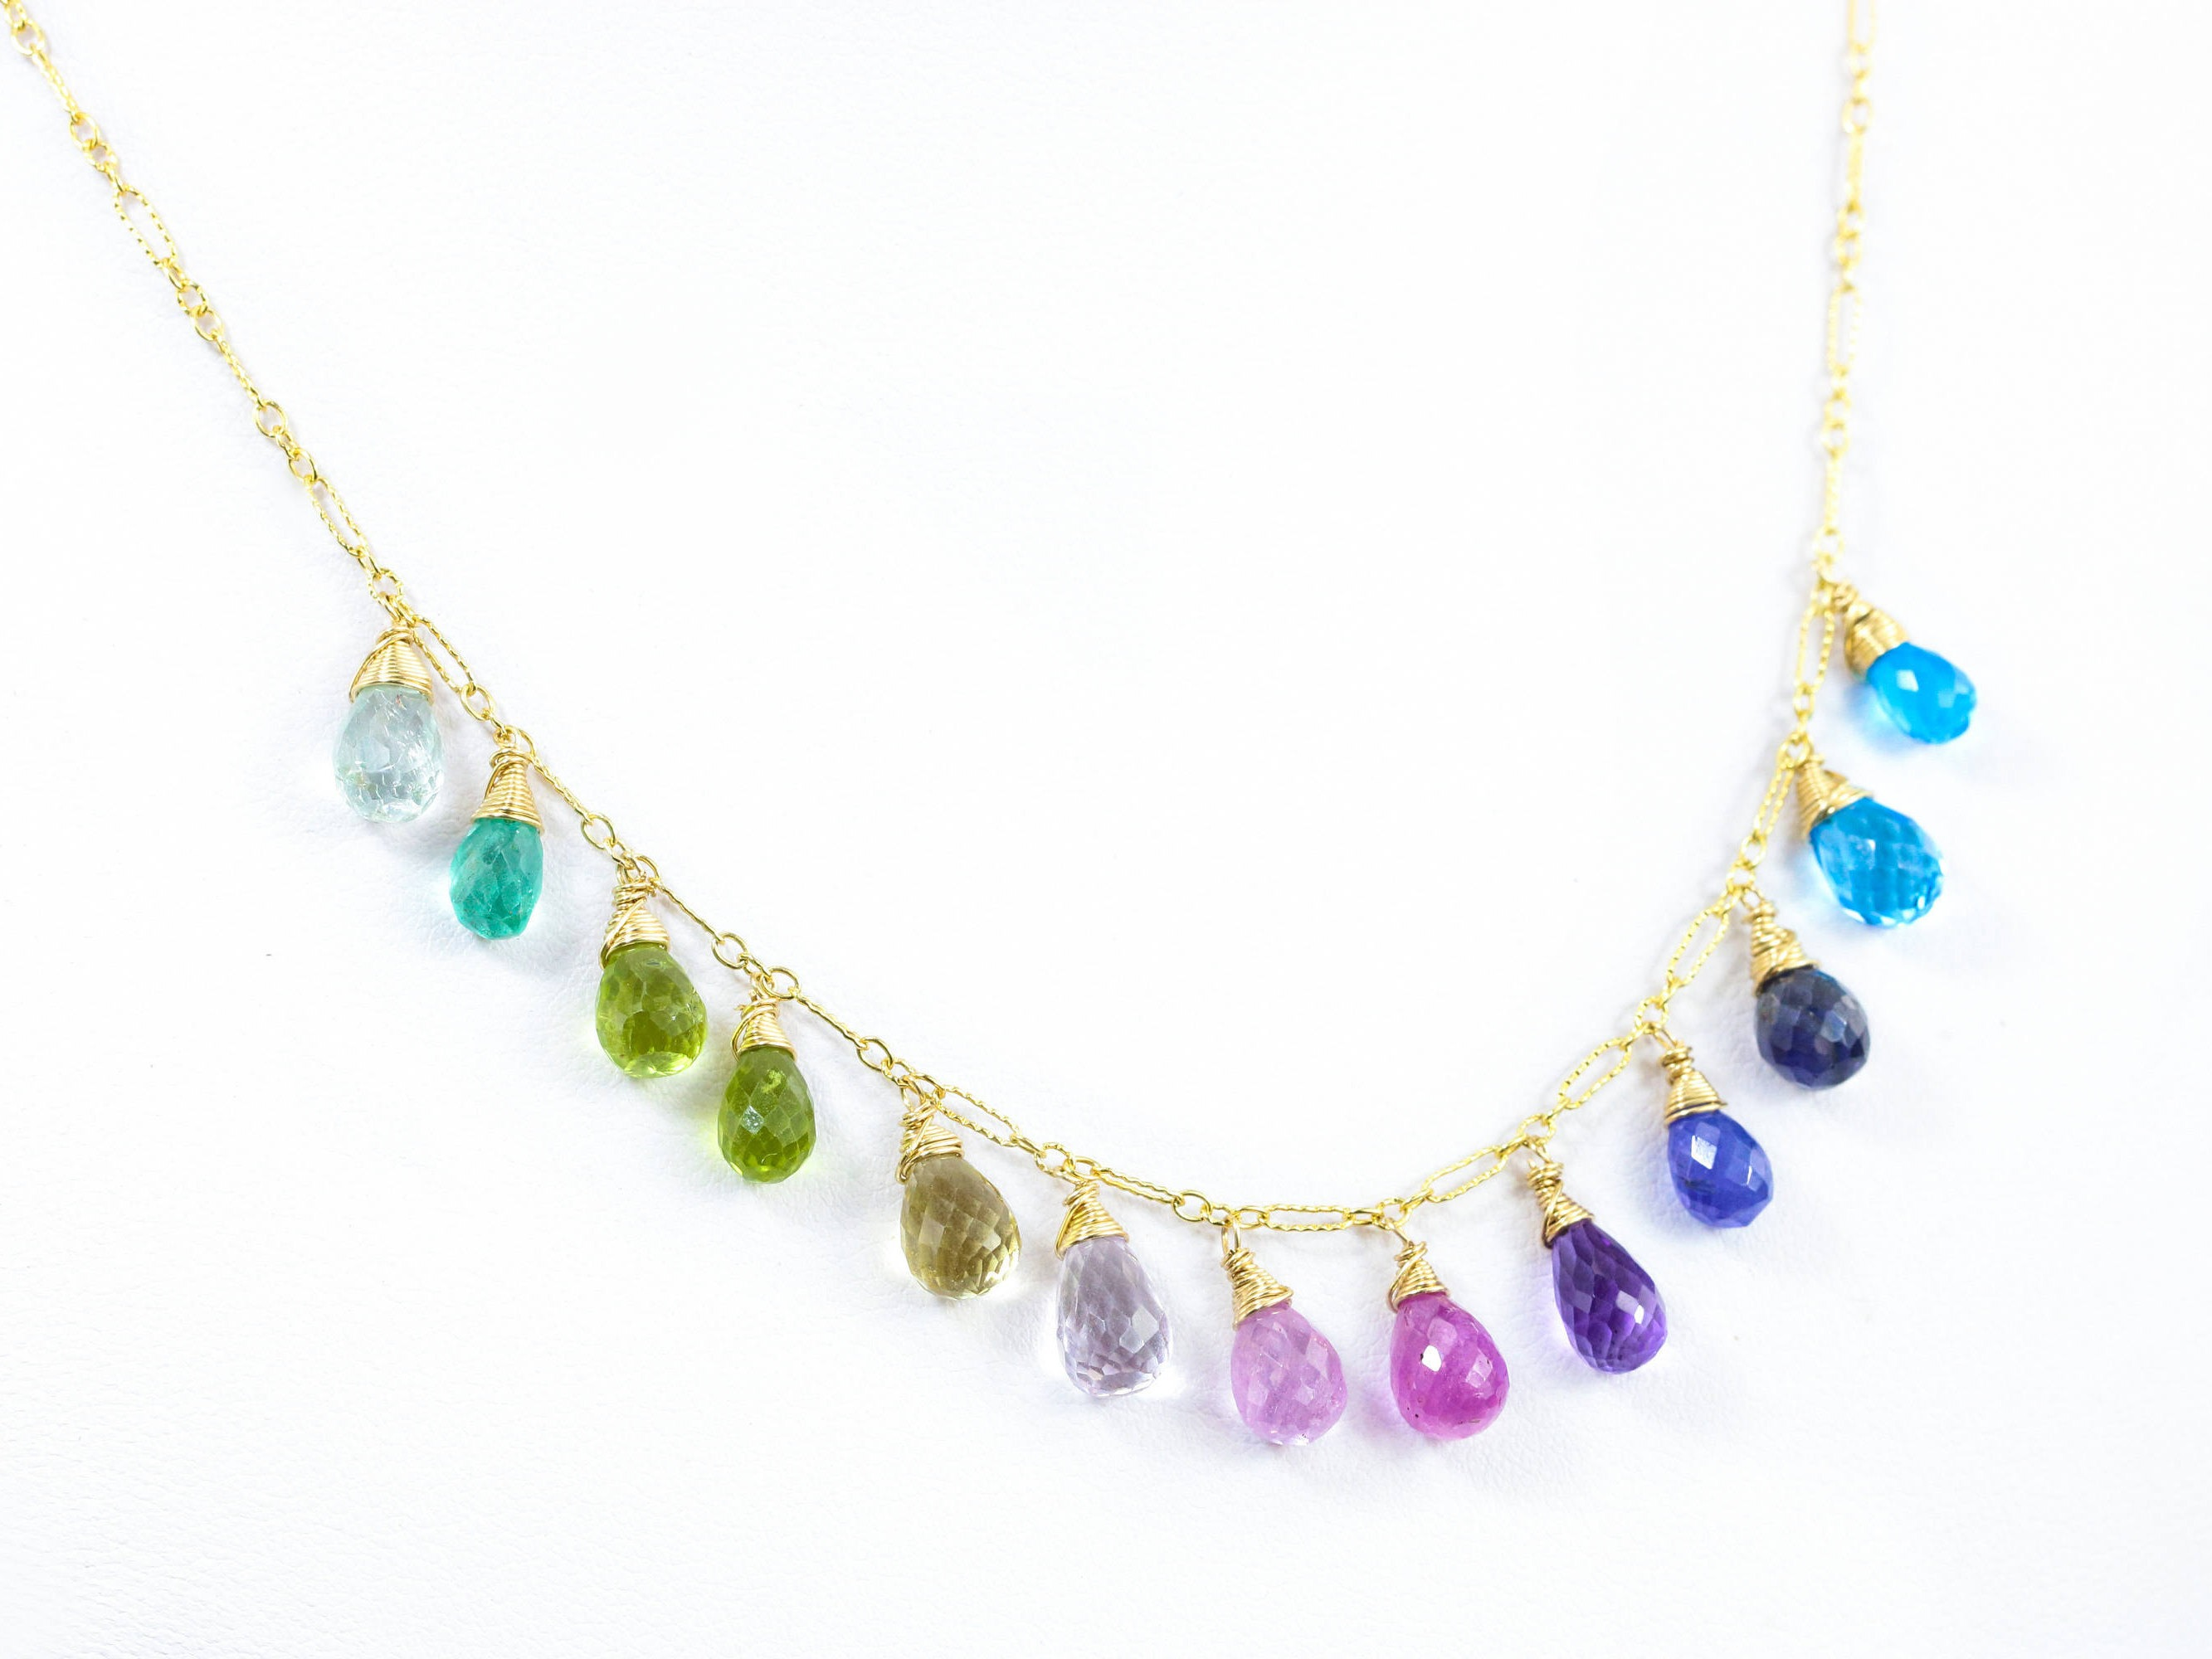 products light necklace jewelry fashion gold rainbow years crystal